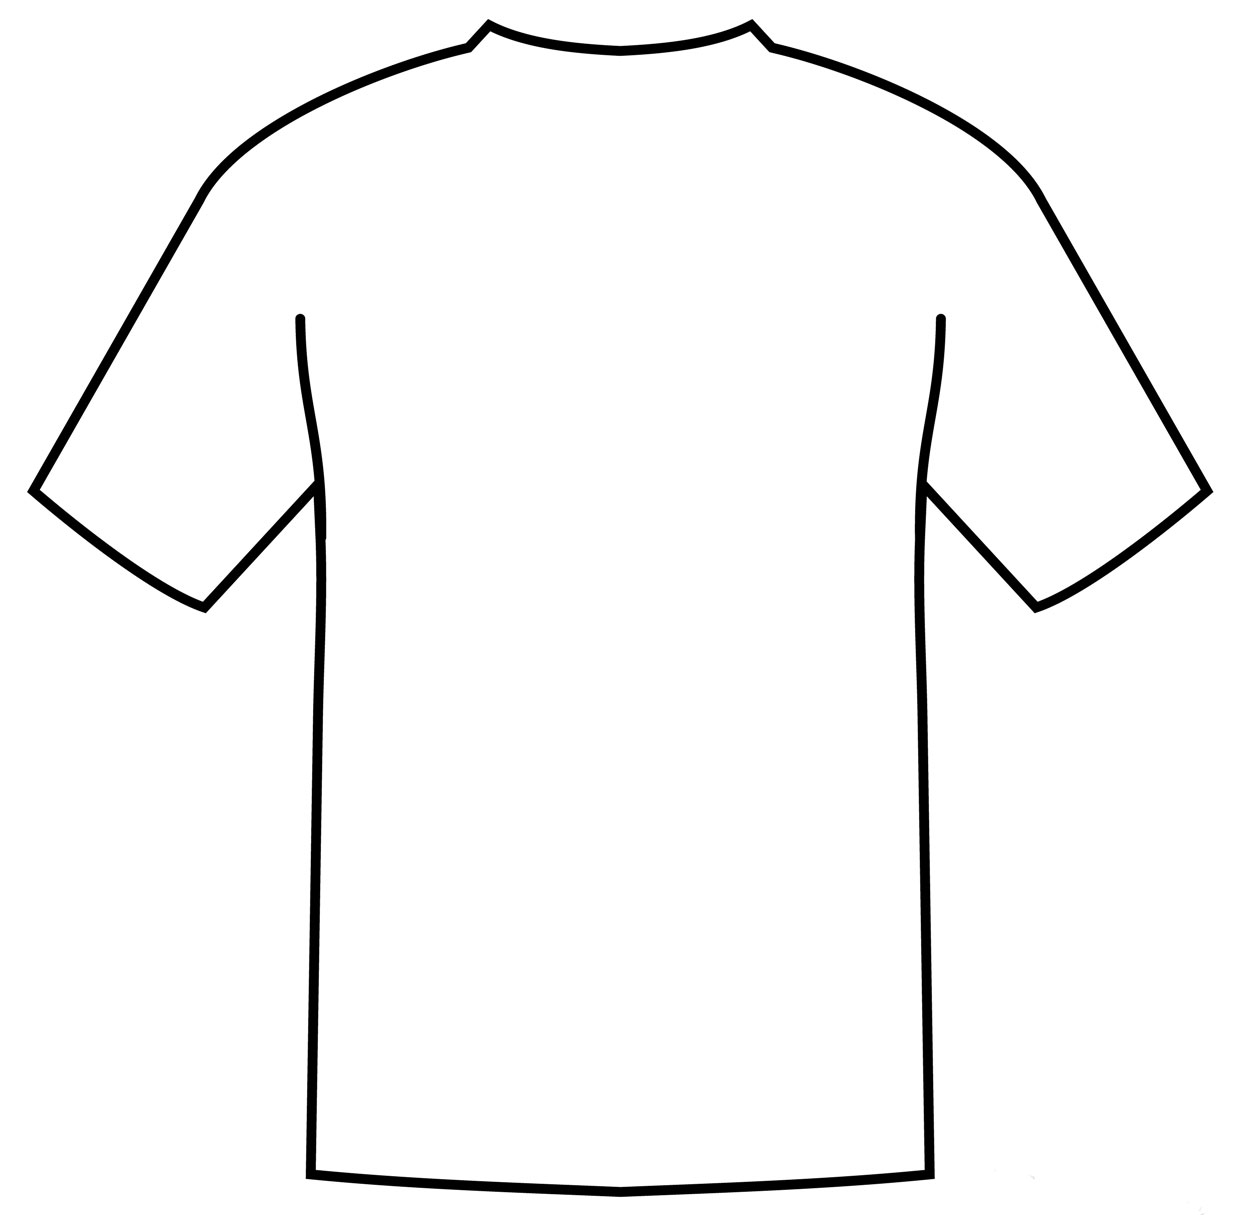 Free Tshirt Layout Download Free Clip Art Free Clip Art